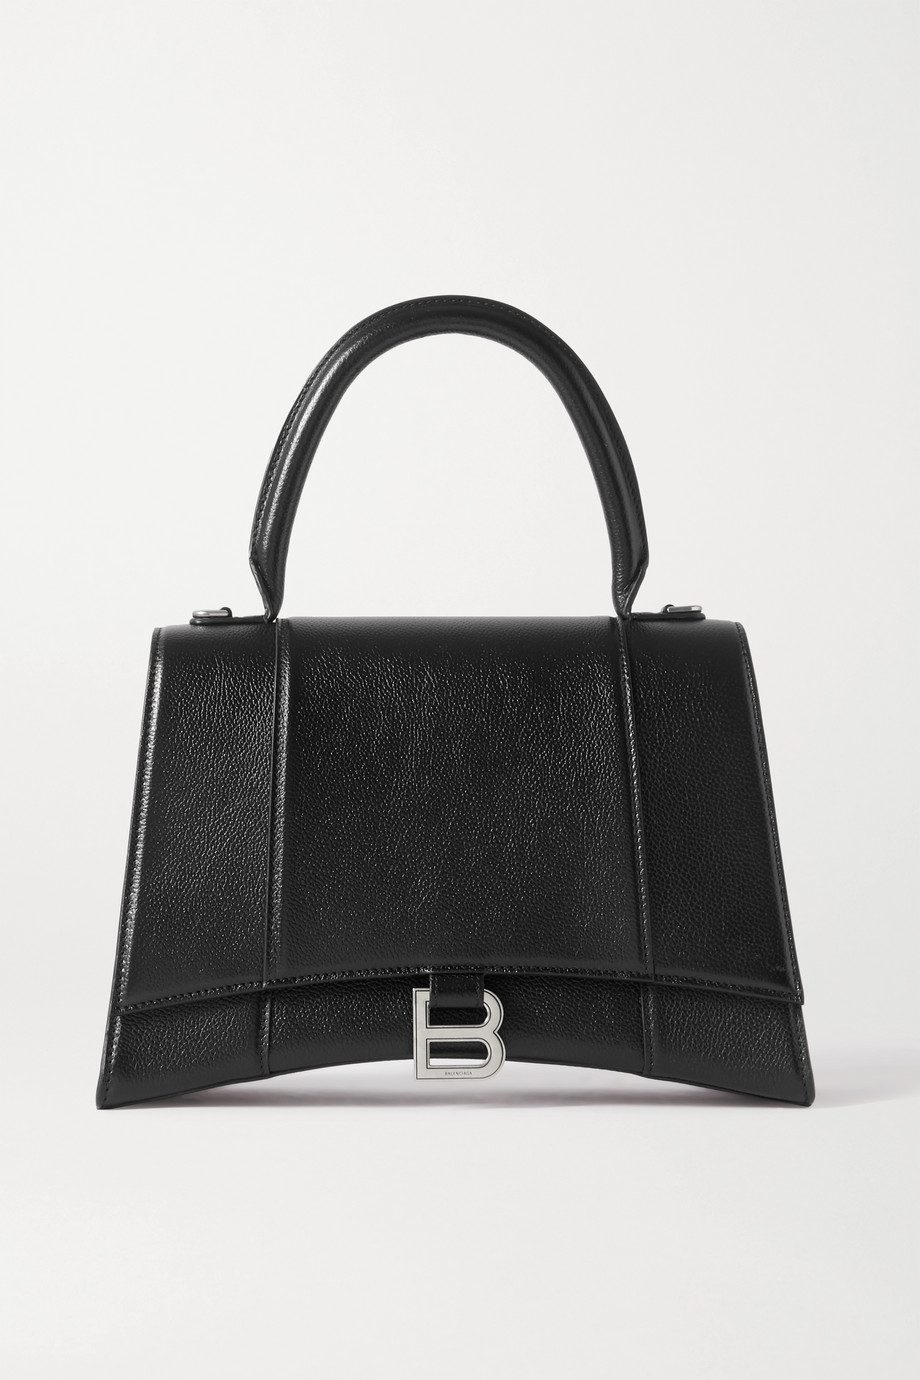 Balenciaga Hourglass medium textured-leather tote